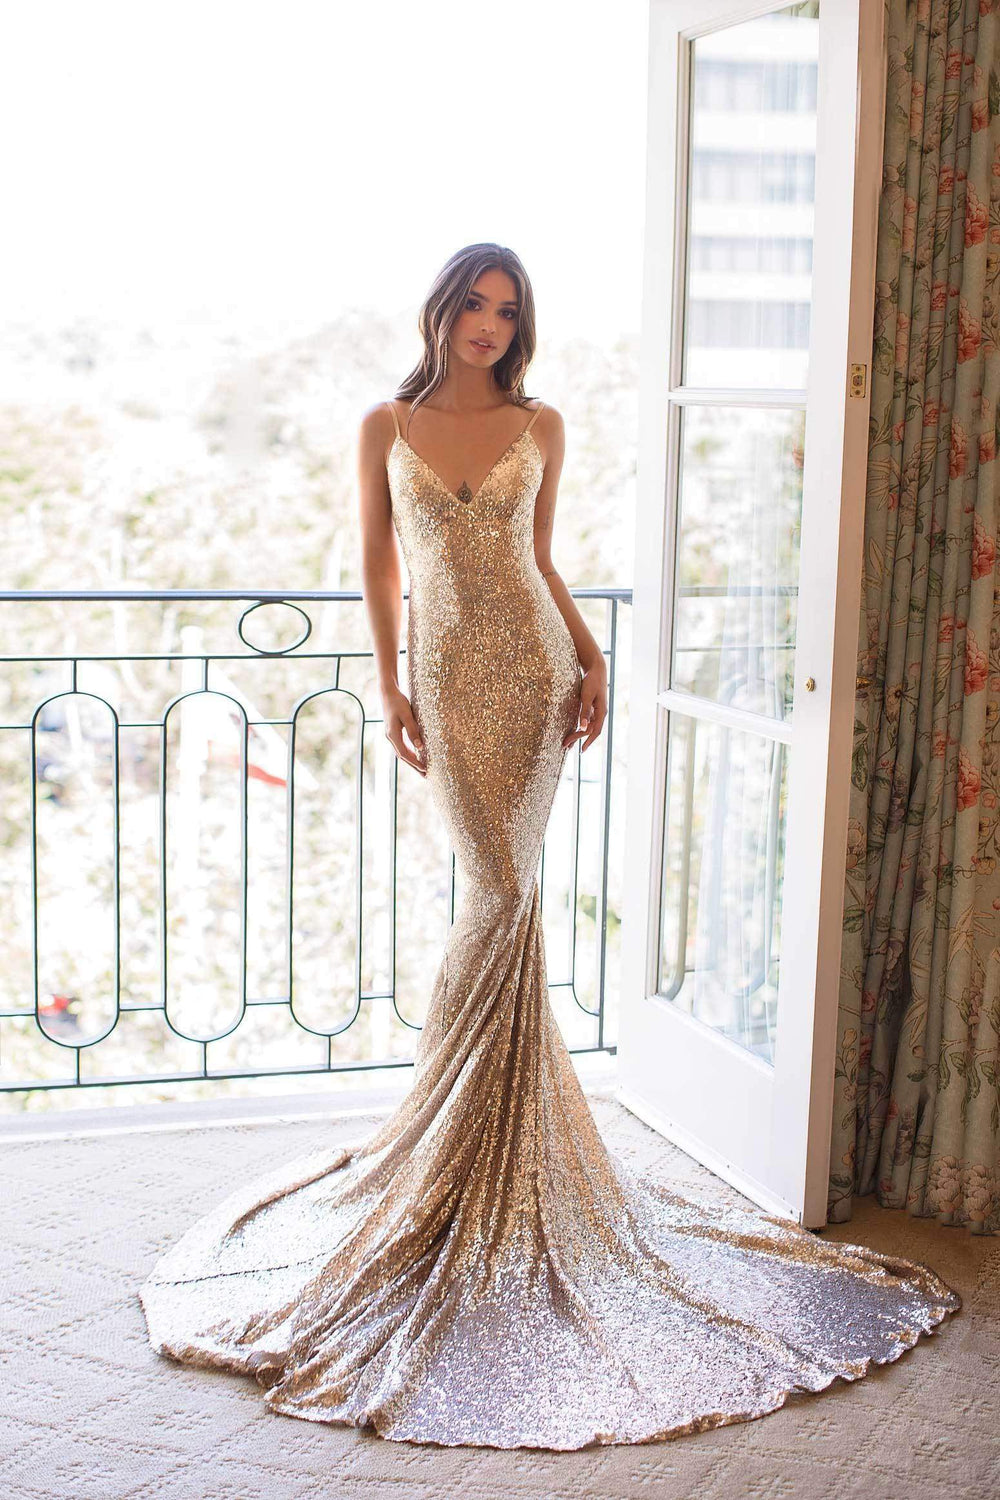 Yassmine Luxe - Copper Gold Sequin Gown with V Plunge Neckline